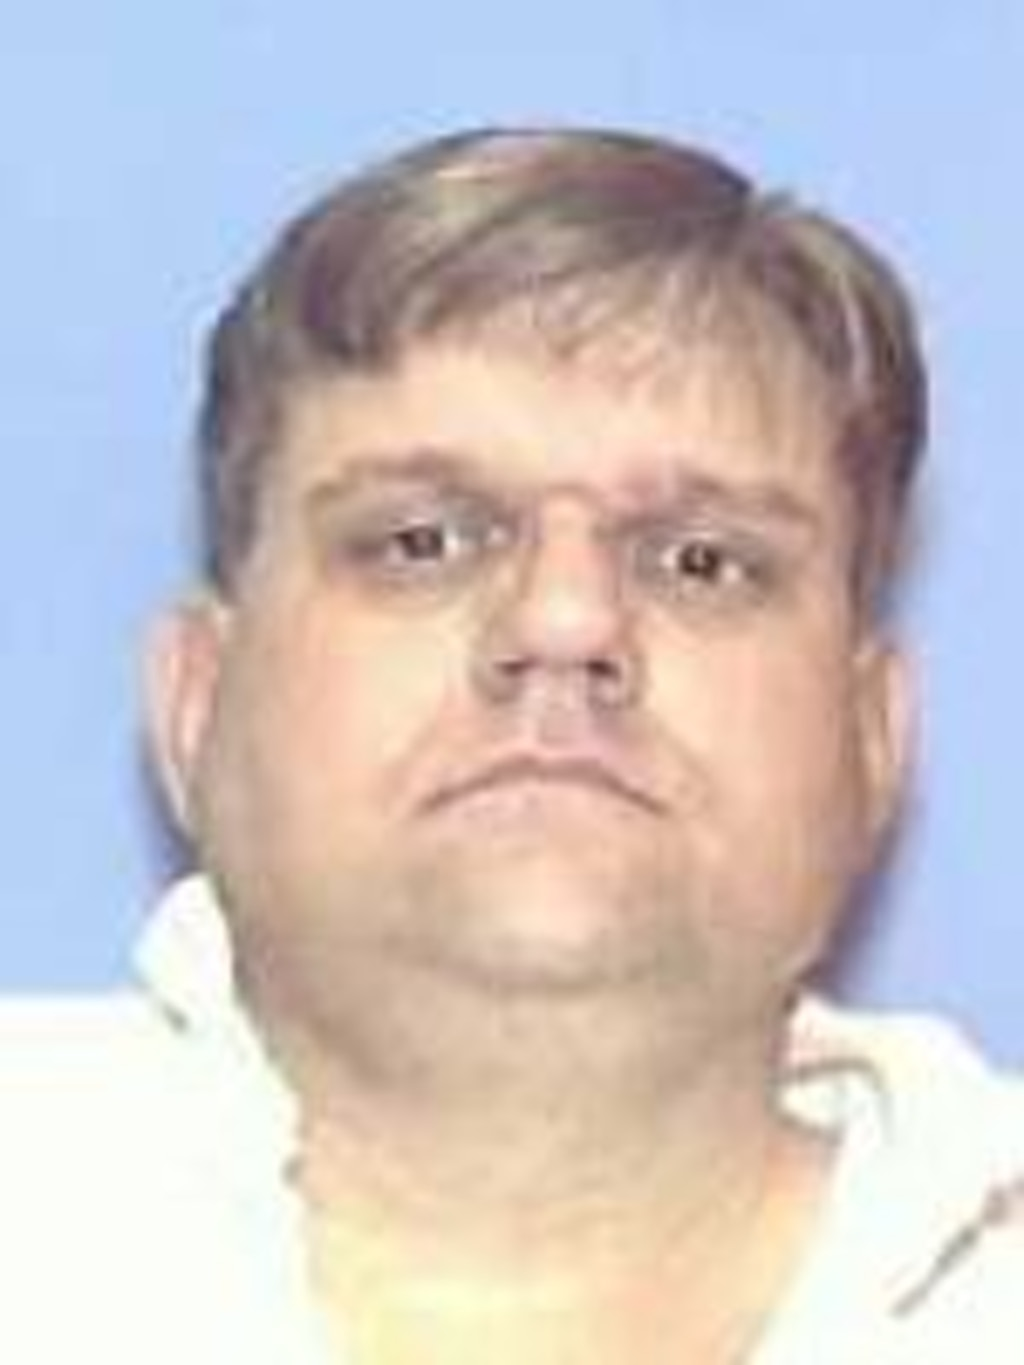 Texas About to Execute Inmate Despite Evidence of Intellectual Disability